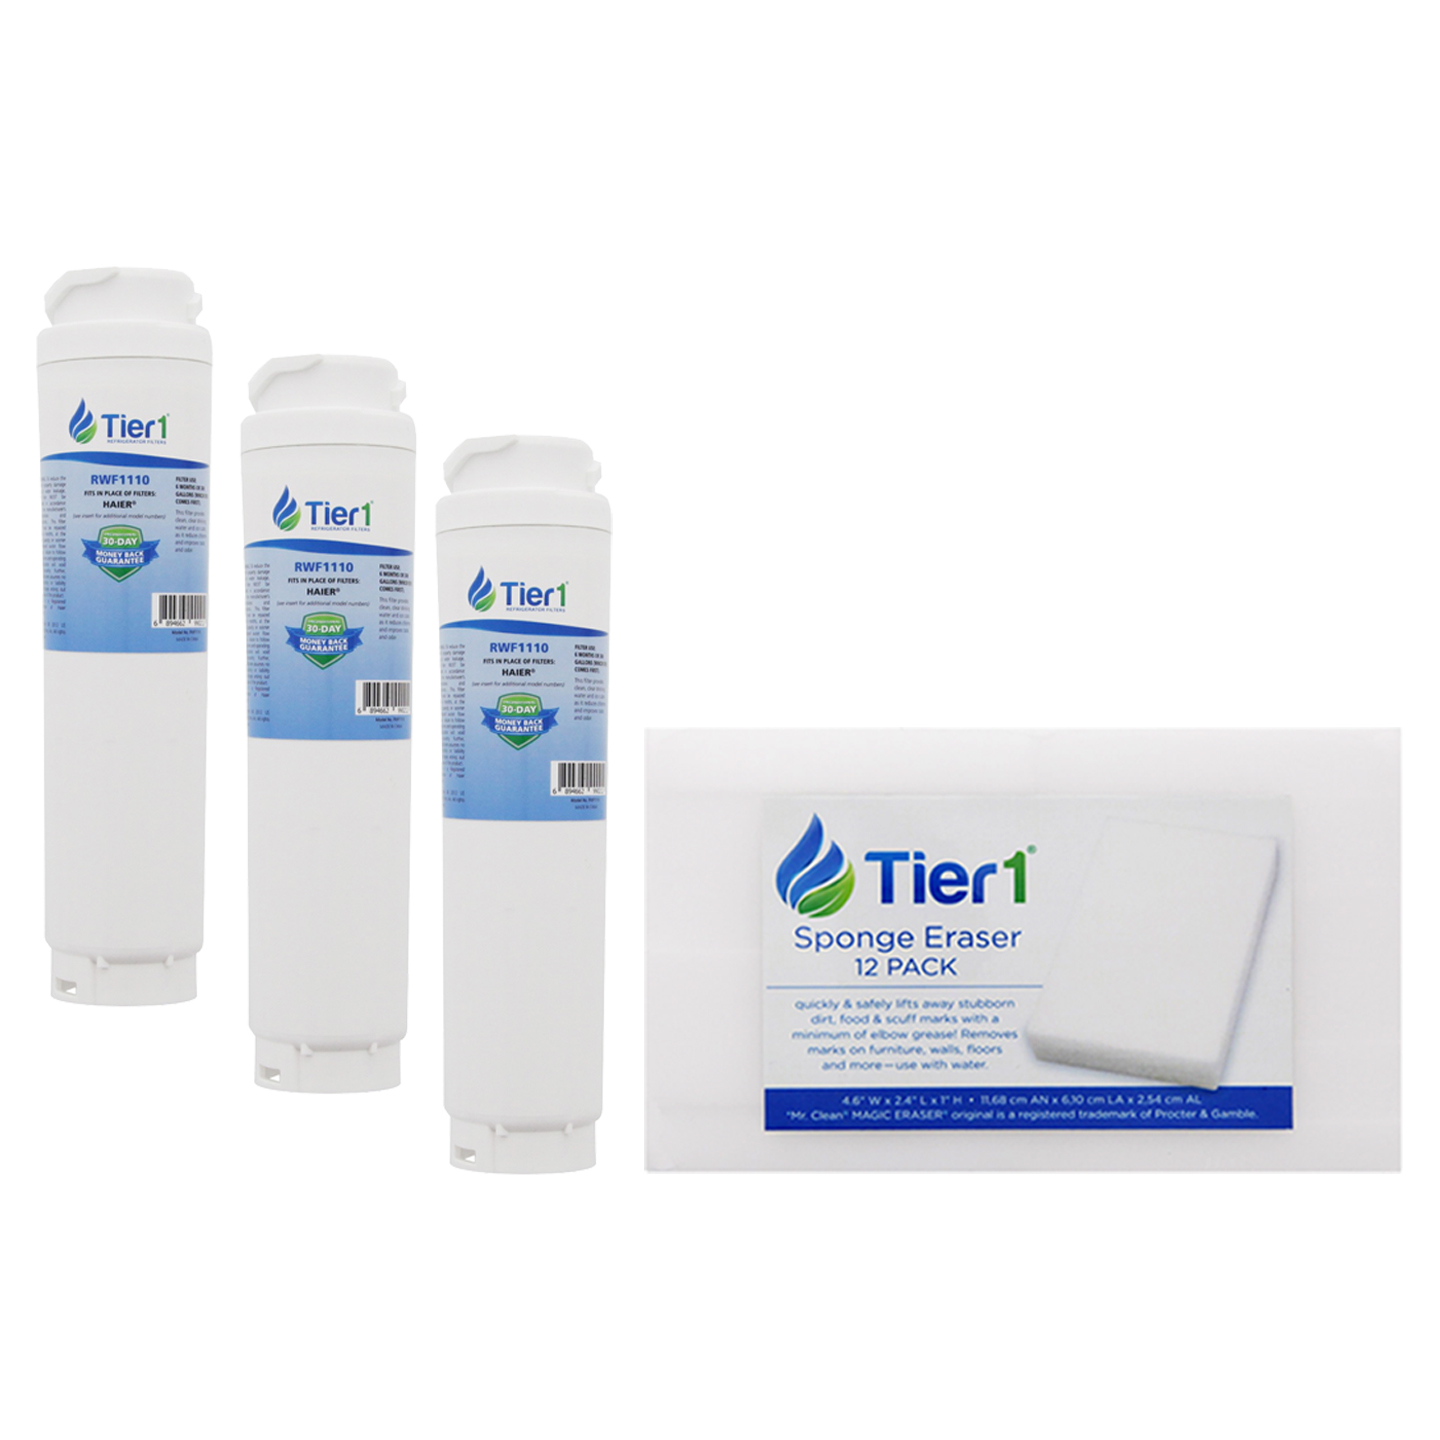 Tier1 Replacement for Bosch 644845 / UltraClarity REPLFLTR10 Bosch  Refrigerator Water Filter Replacement by Tier1 (3-Pack) and Magic Erasing  Sponge